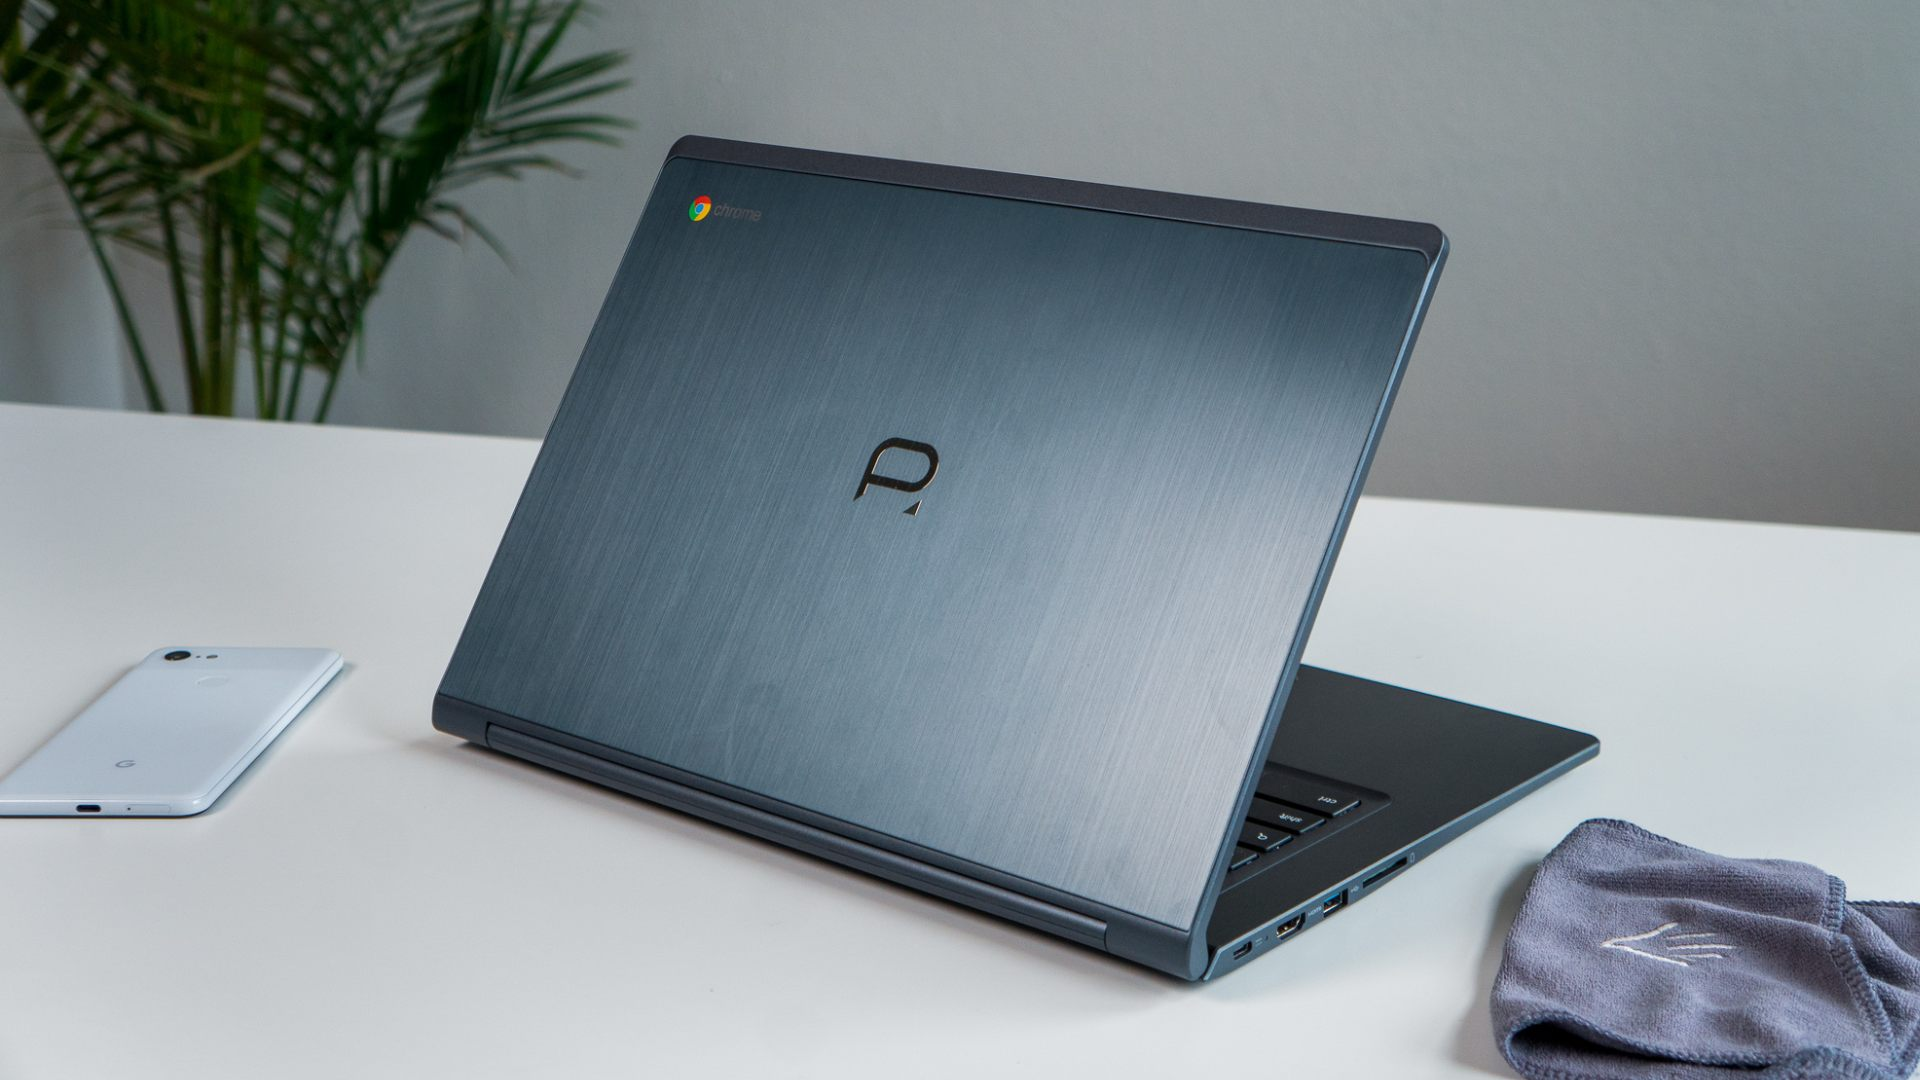 Poin2 Chromebook 14 Review: Best Sub-$300 Chromebook With A Catch